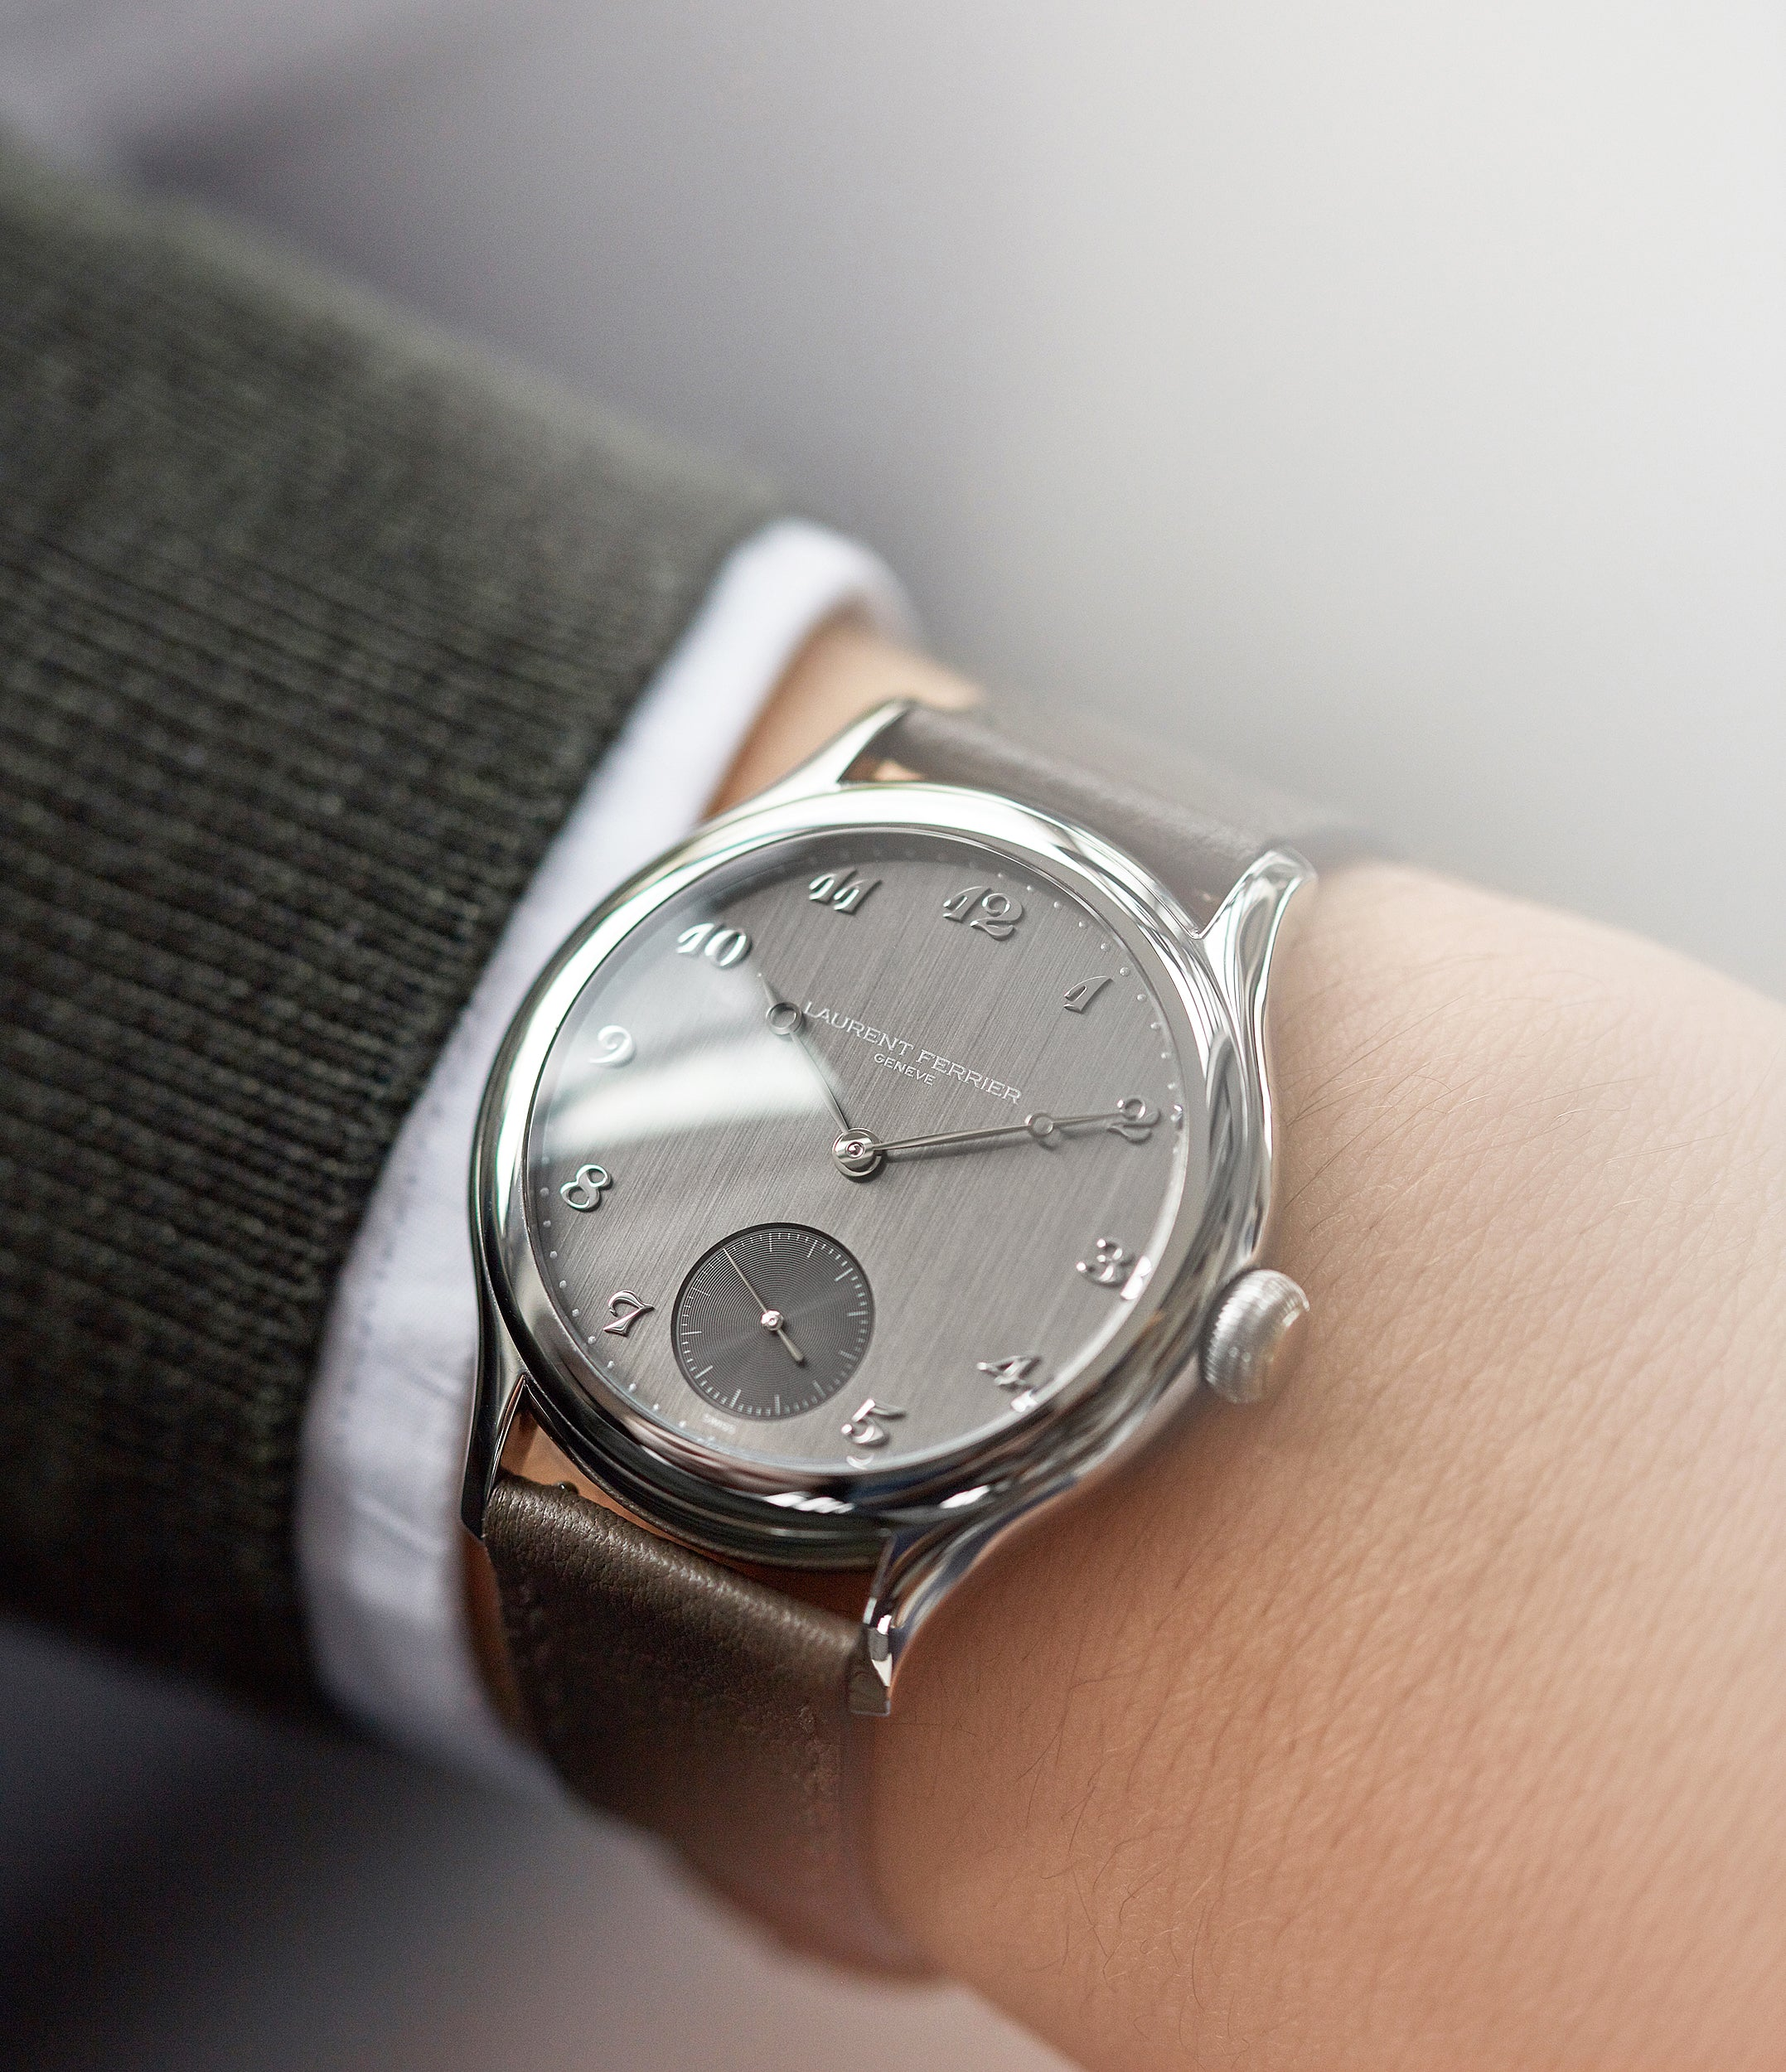 wristwatch Laurent Ferrier Galet Micro-rotor steel grey brushed dial time-only dress watch for sale online at A Collected Man London UK specialist of independent watchmakers